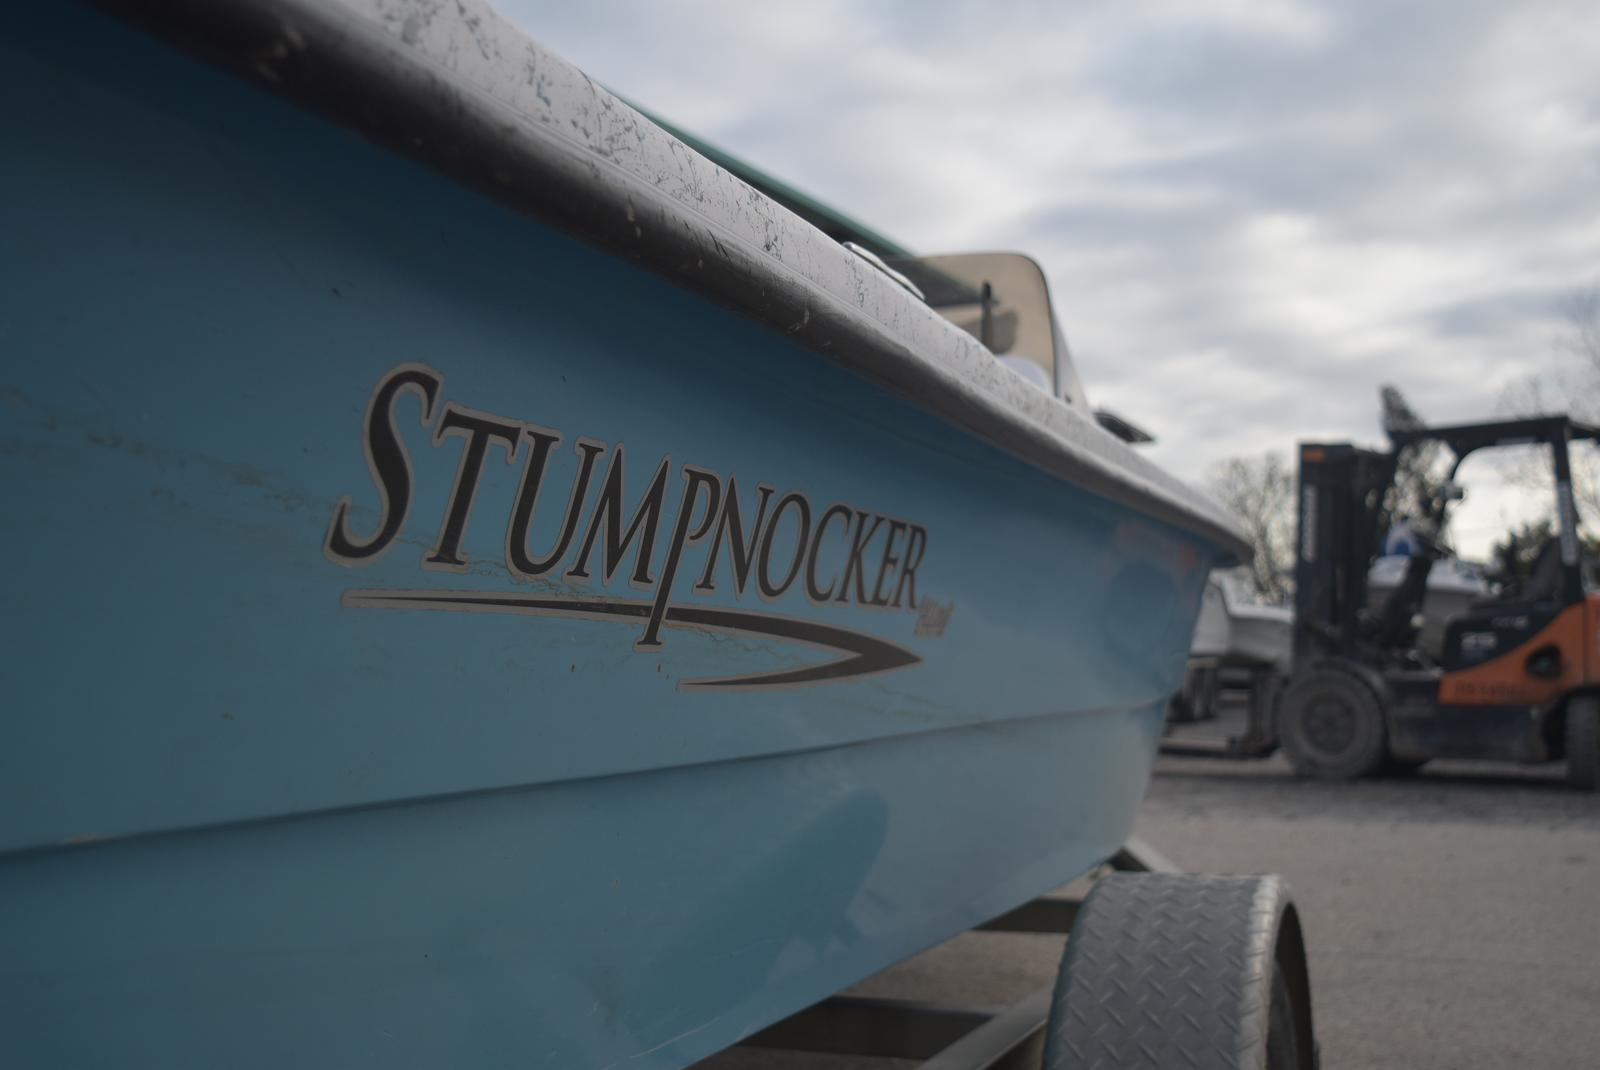 2012 Stumpnocker boat for sale, model of the boat is 17 Stumpnocker & Image # 4 of 7